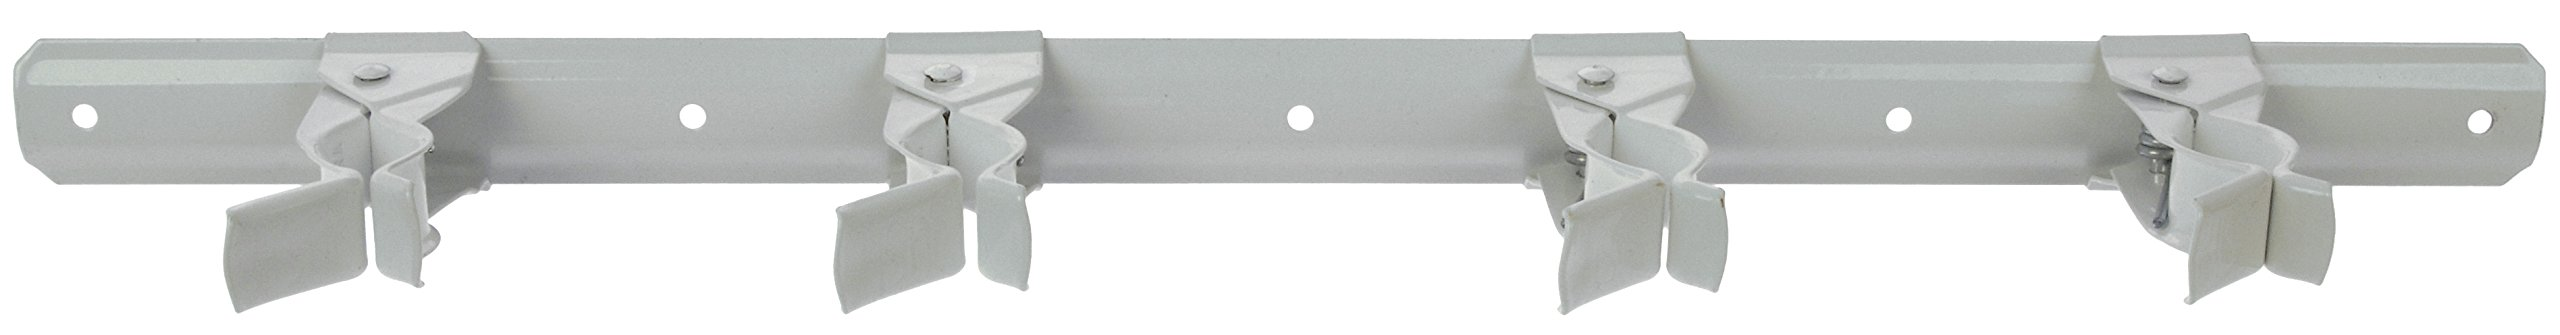 Dorman Hardware 4-9734 Spring Clip Bar